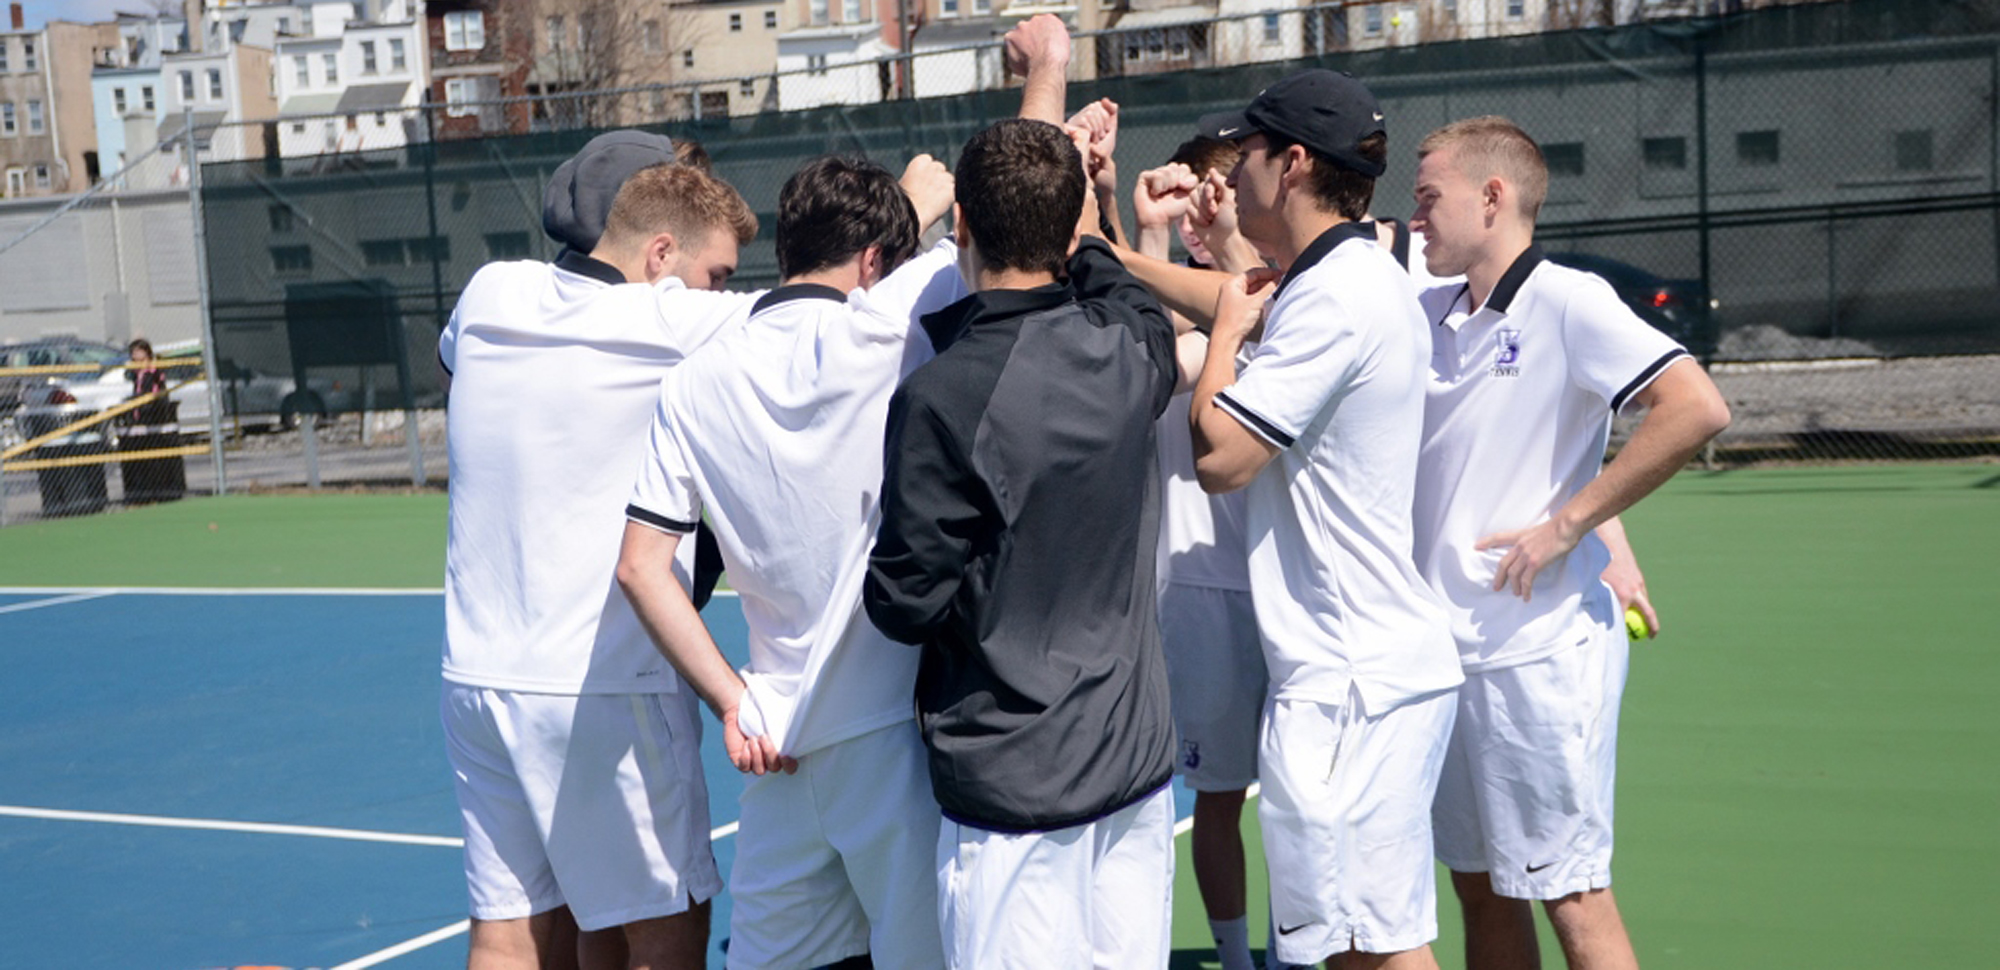 The men's tennis team clinched the #2 seed in the Landmark Conference playoffs with a win at Juniata on Sunday.